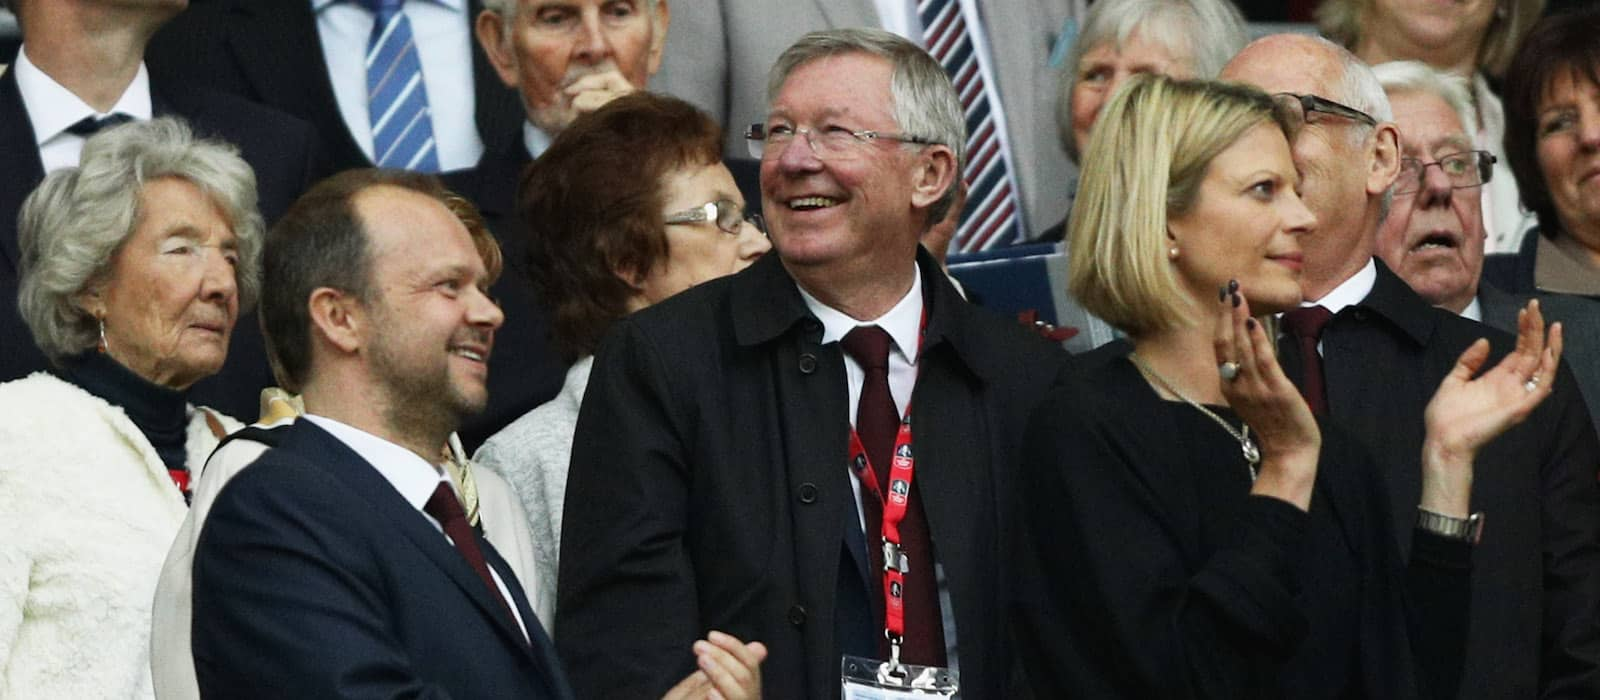 Former Manchester United manager Sir Alex Ferguson is 'out of the hospital': report